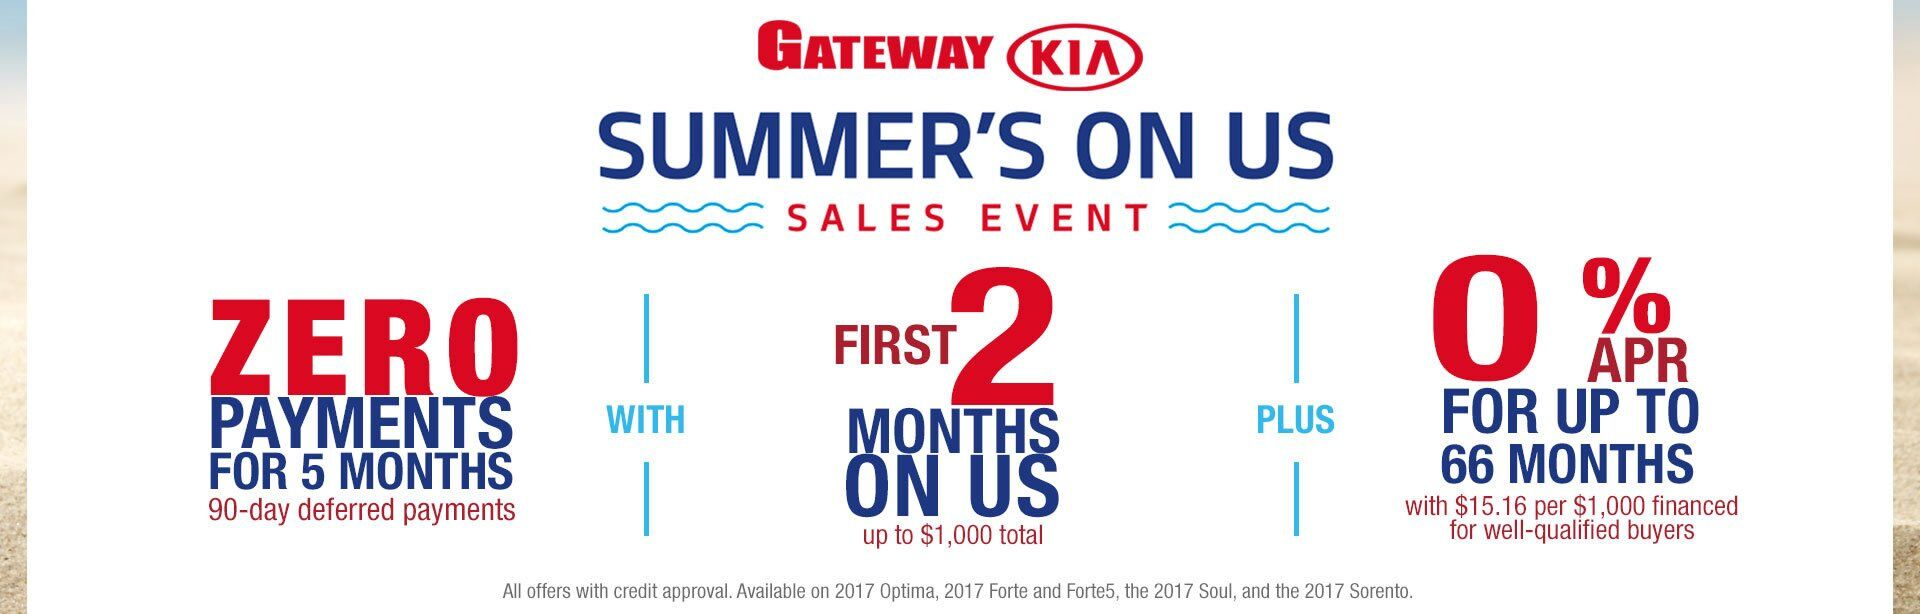 Kia Summer's On Us